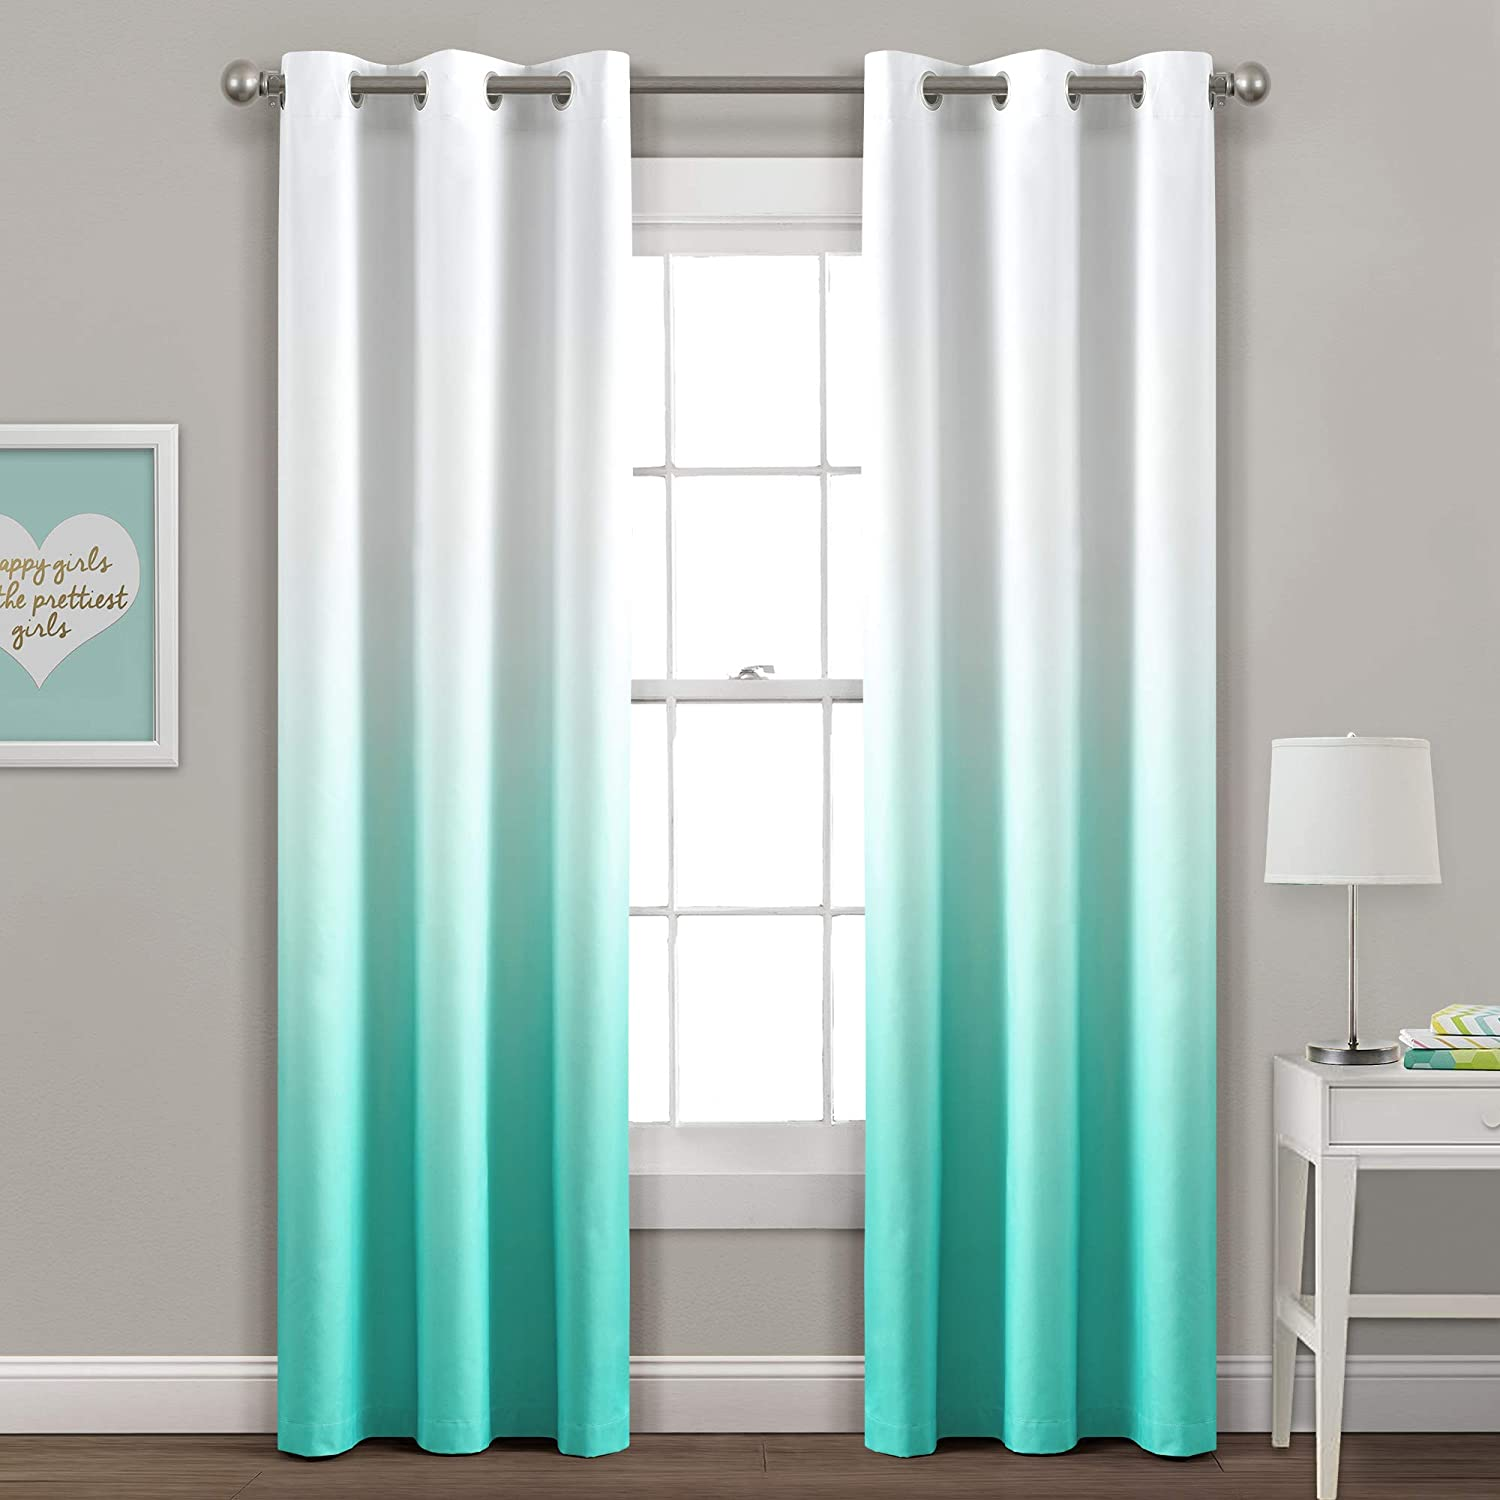 PBJ Mia Ombre Super sale Insulated Gromment Curtain Panel Blackout Window Free shipping / New